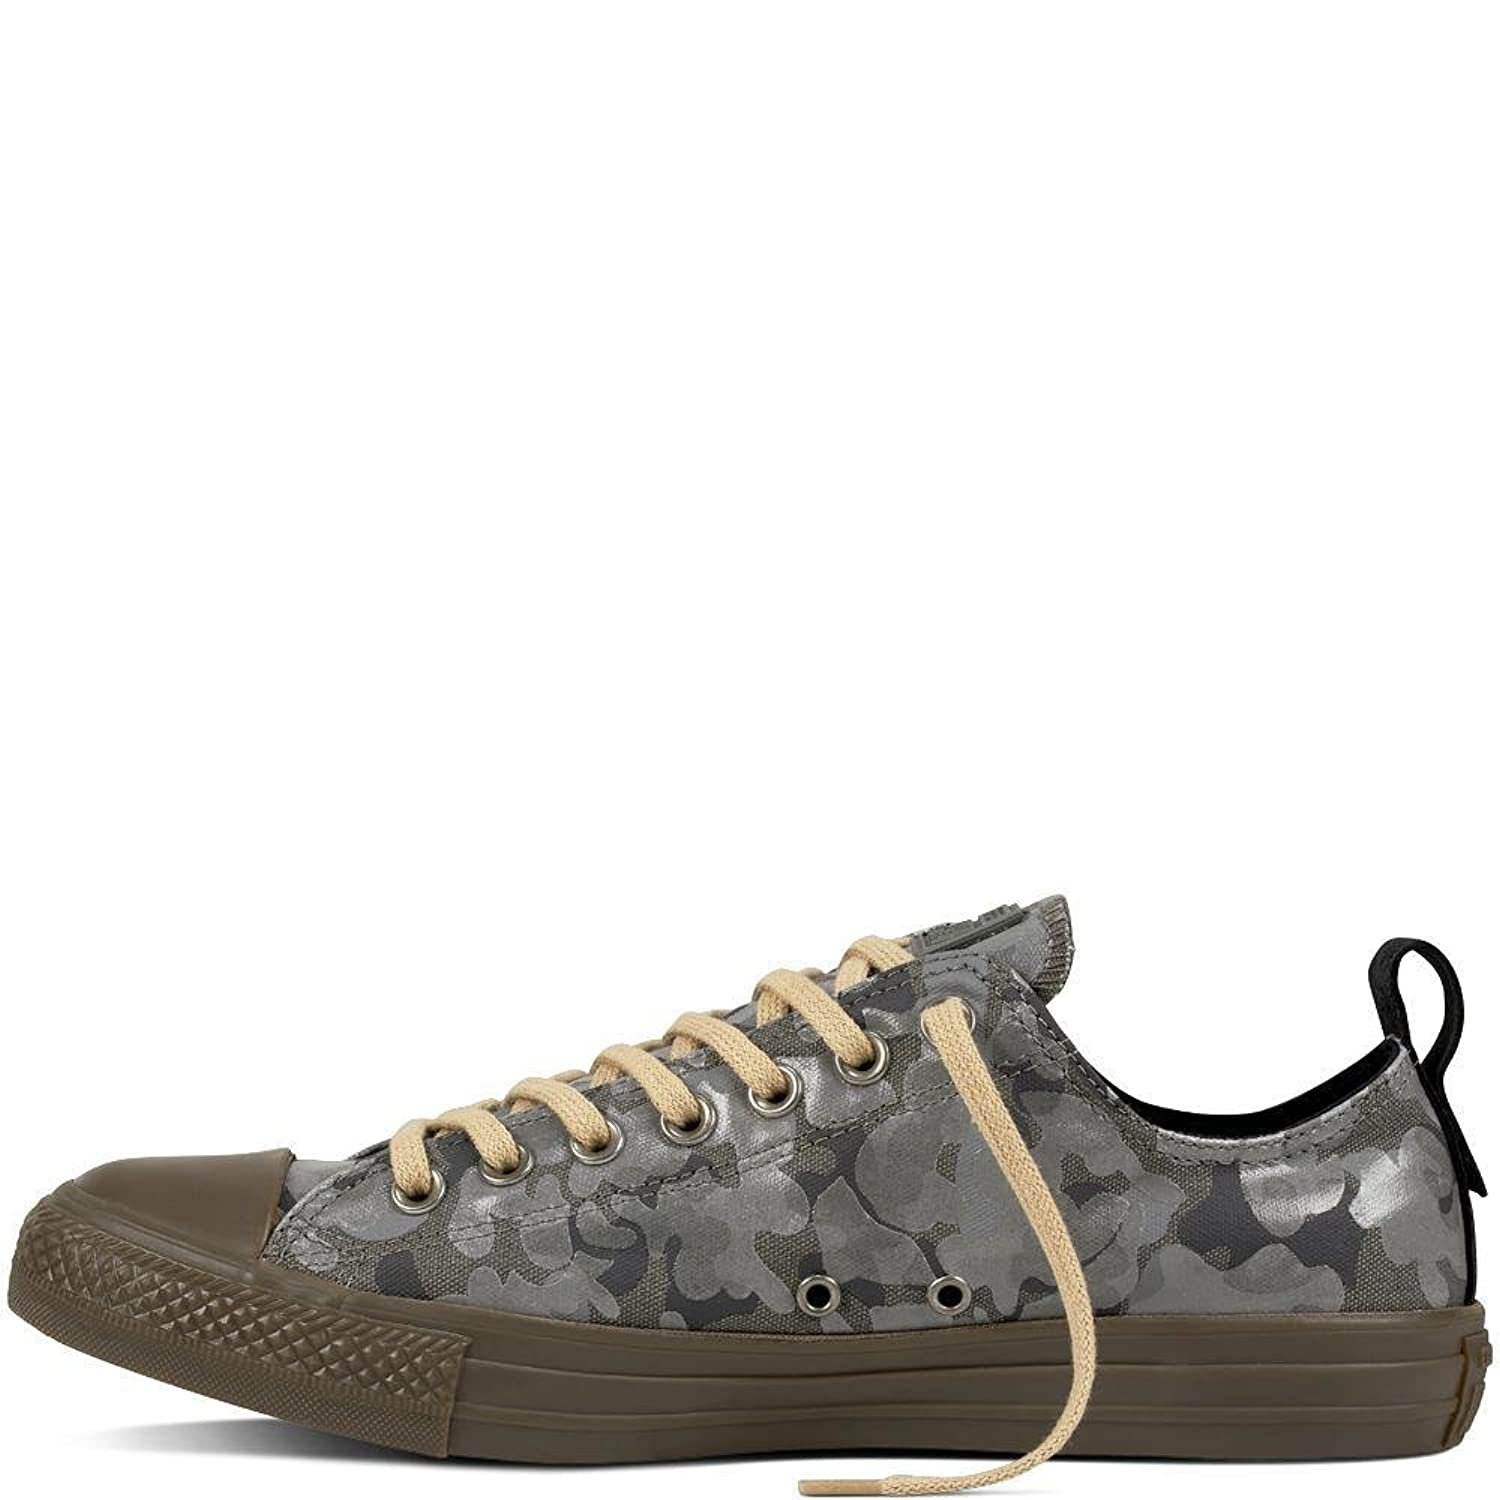 9ad969d5f57b8f Converse Men s Chuck Taylor All Star Utility Camo Low Top Sneaker 7.5 D(M)  US  Buy Online at Low Prices in India - Amazon.in